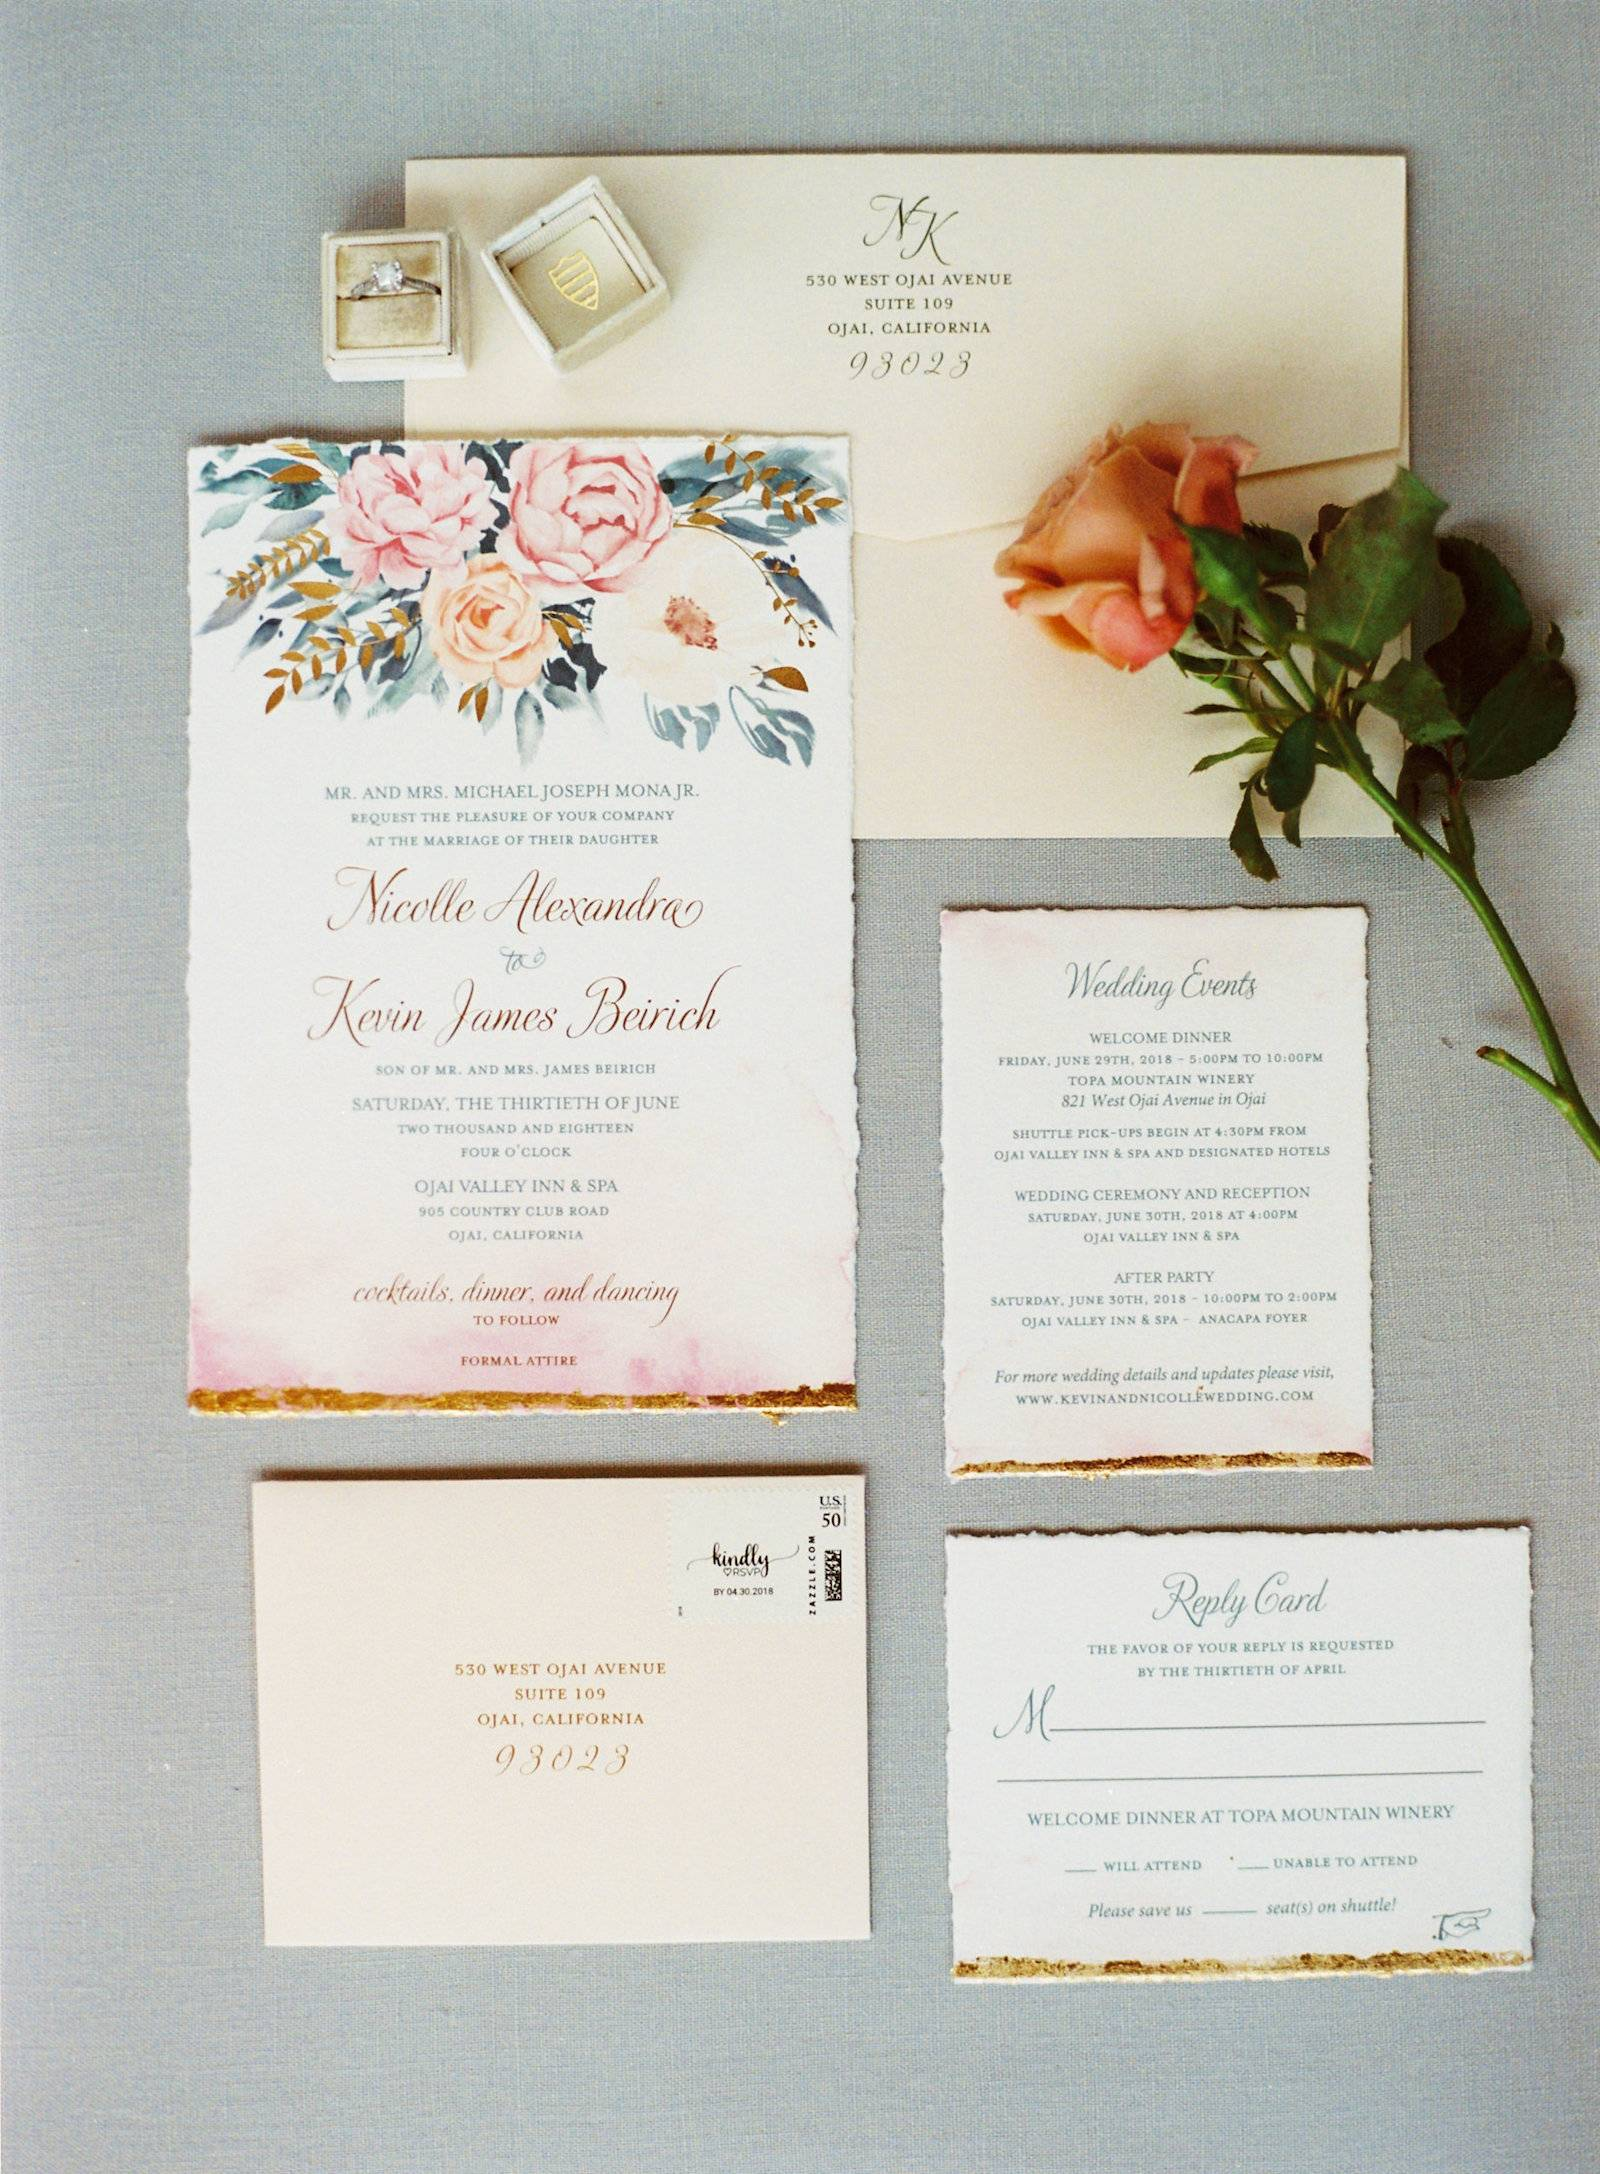 Samples of Wedding Cards | The Wedding Standard